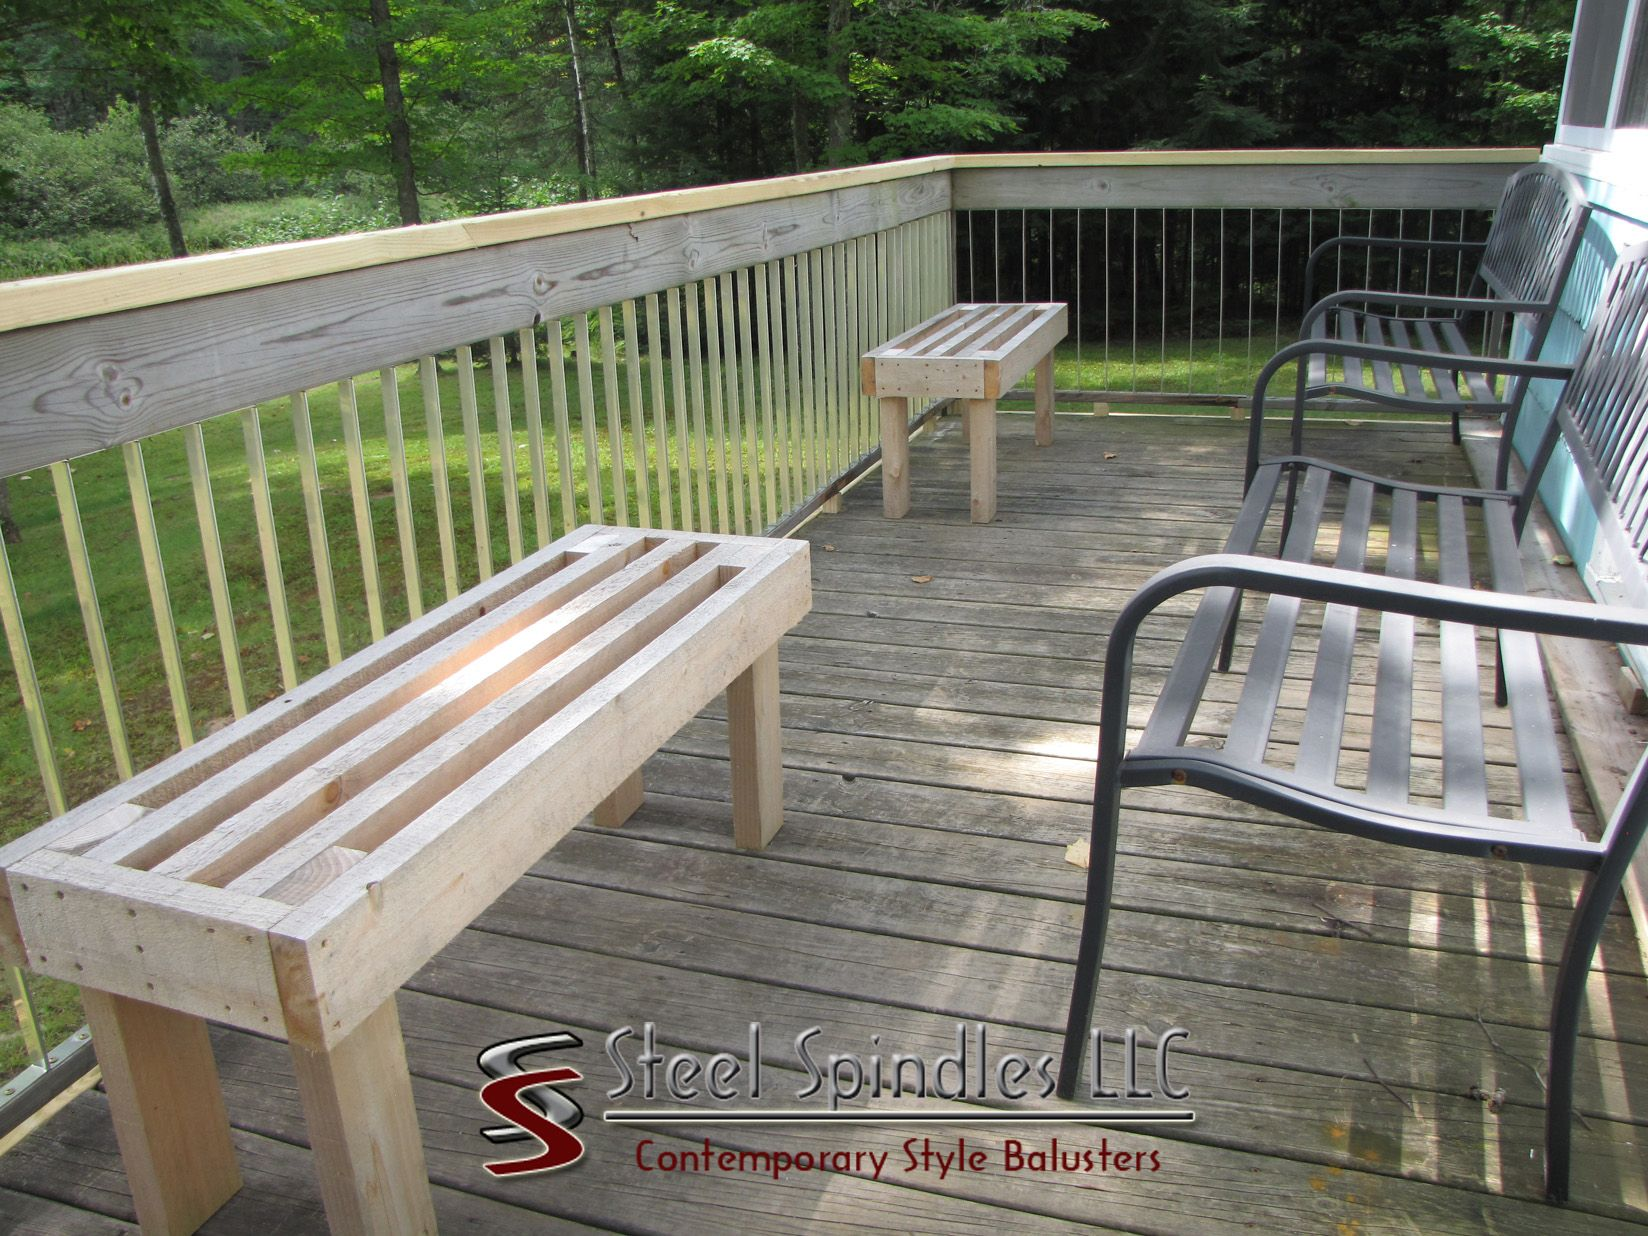 Steel Spindles LLC Contemporary Deck Balusters Now Available At Argonne  Lumber In Rhinelander Wi.Deck